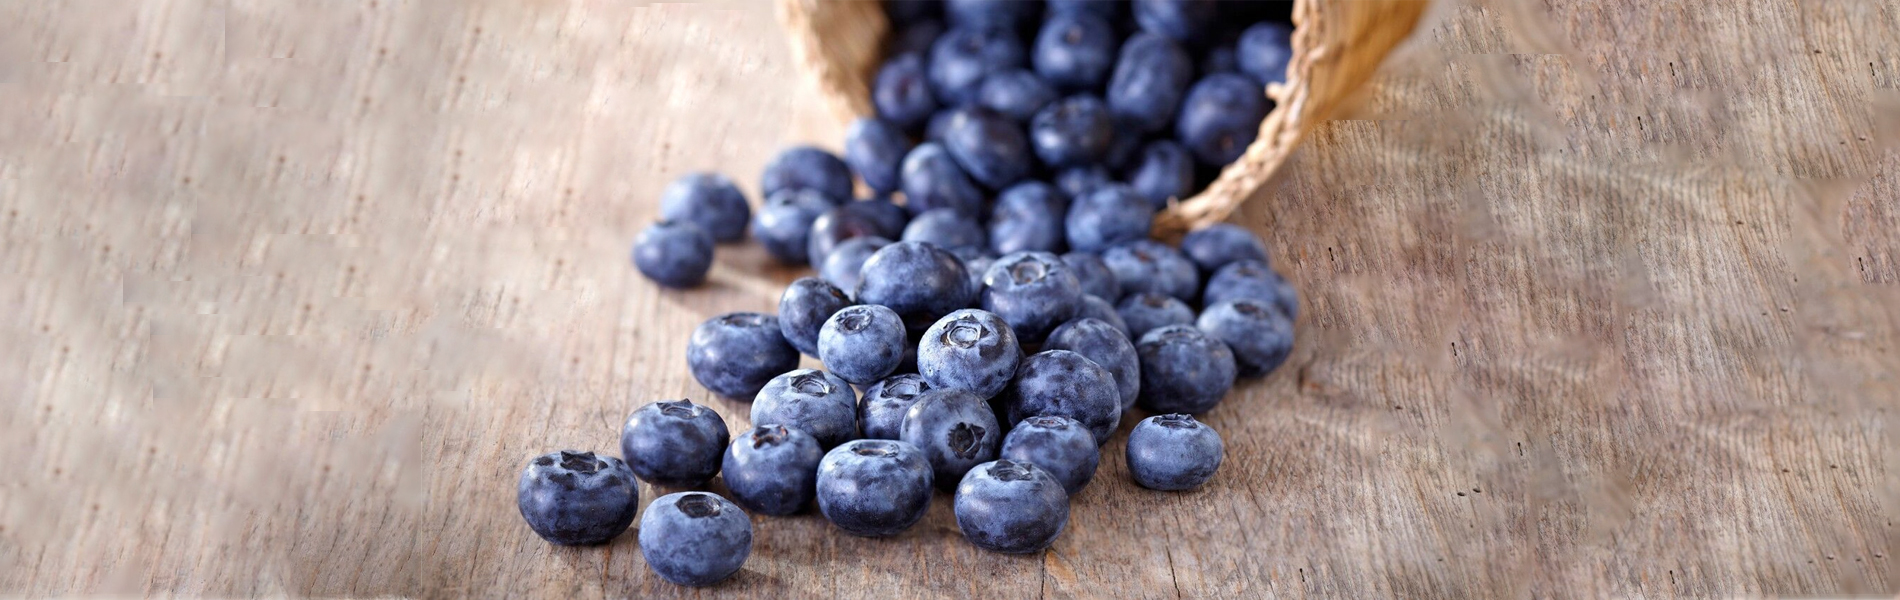 New Research Examines Blueberries' Effect on Cardiometabolic Health